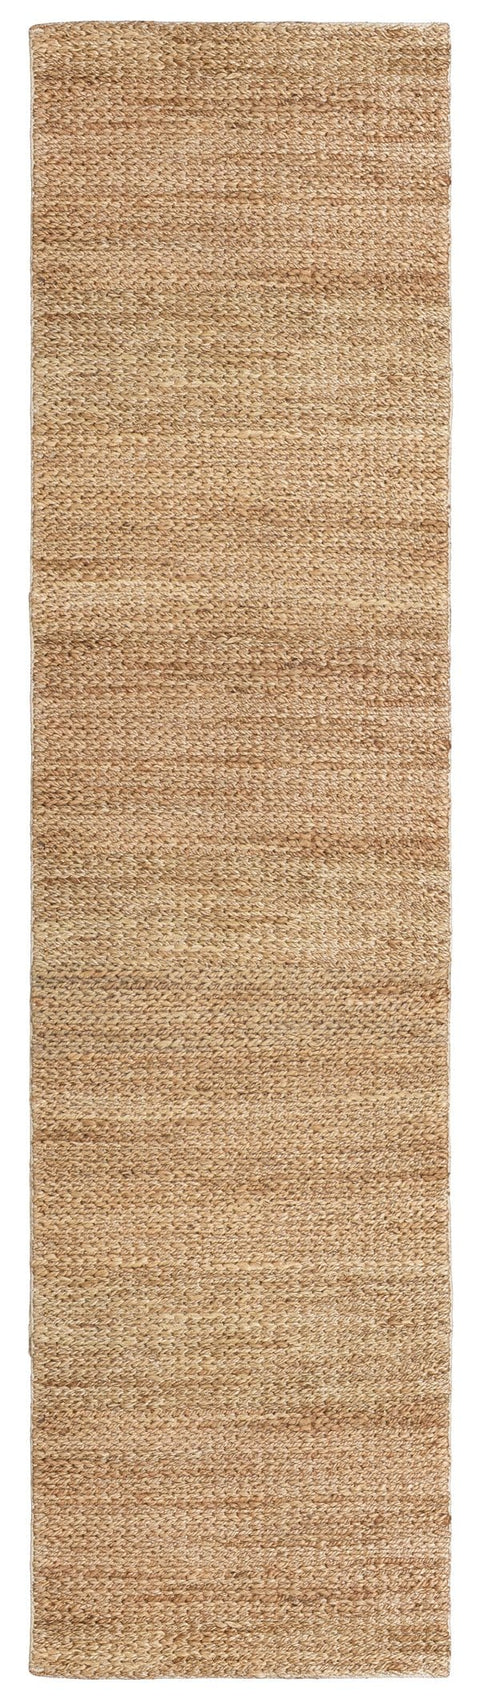 Indigo Natural Tan Braided Jute Runner Rug